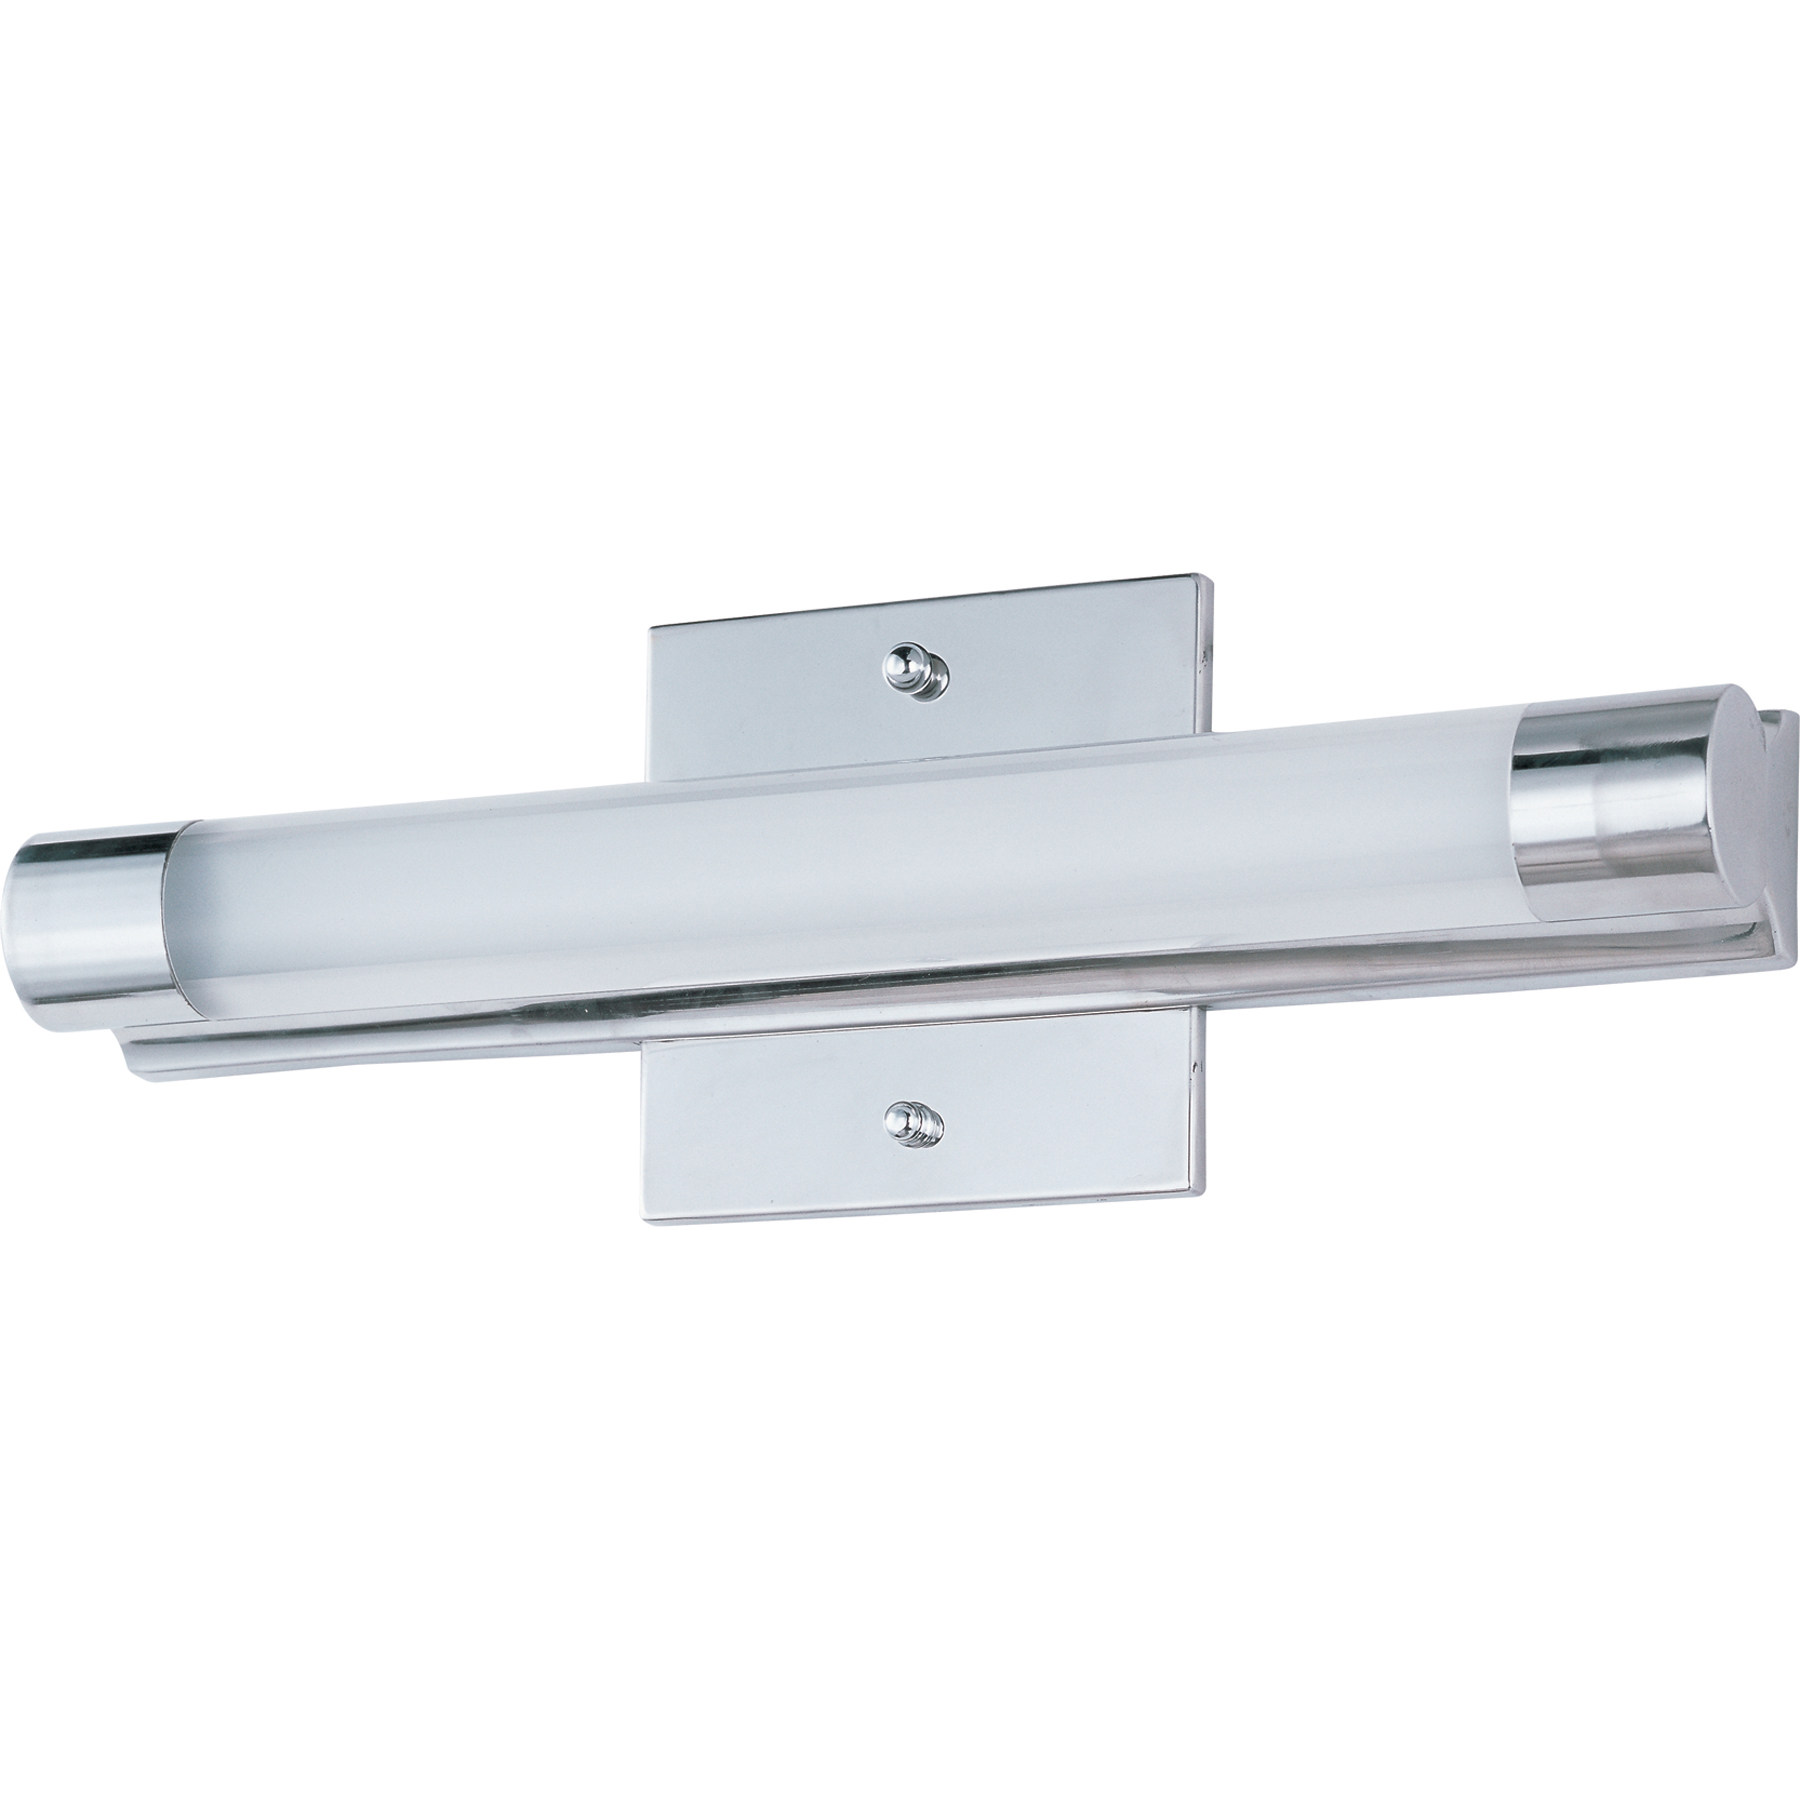 Led Lights For Vanity : Wand LED Bathroom Vanity Light by Et2 E22391-10PC